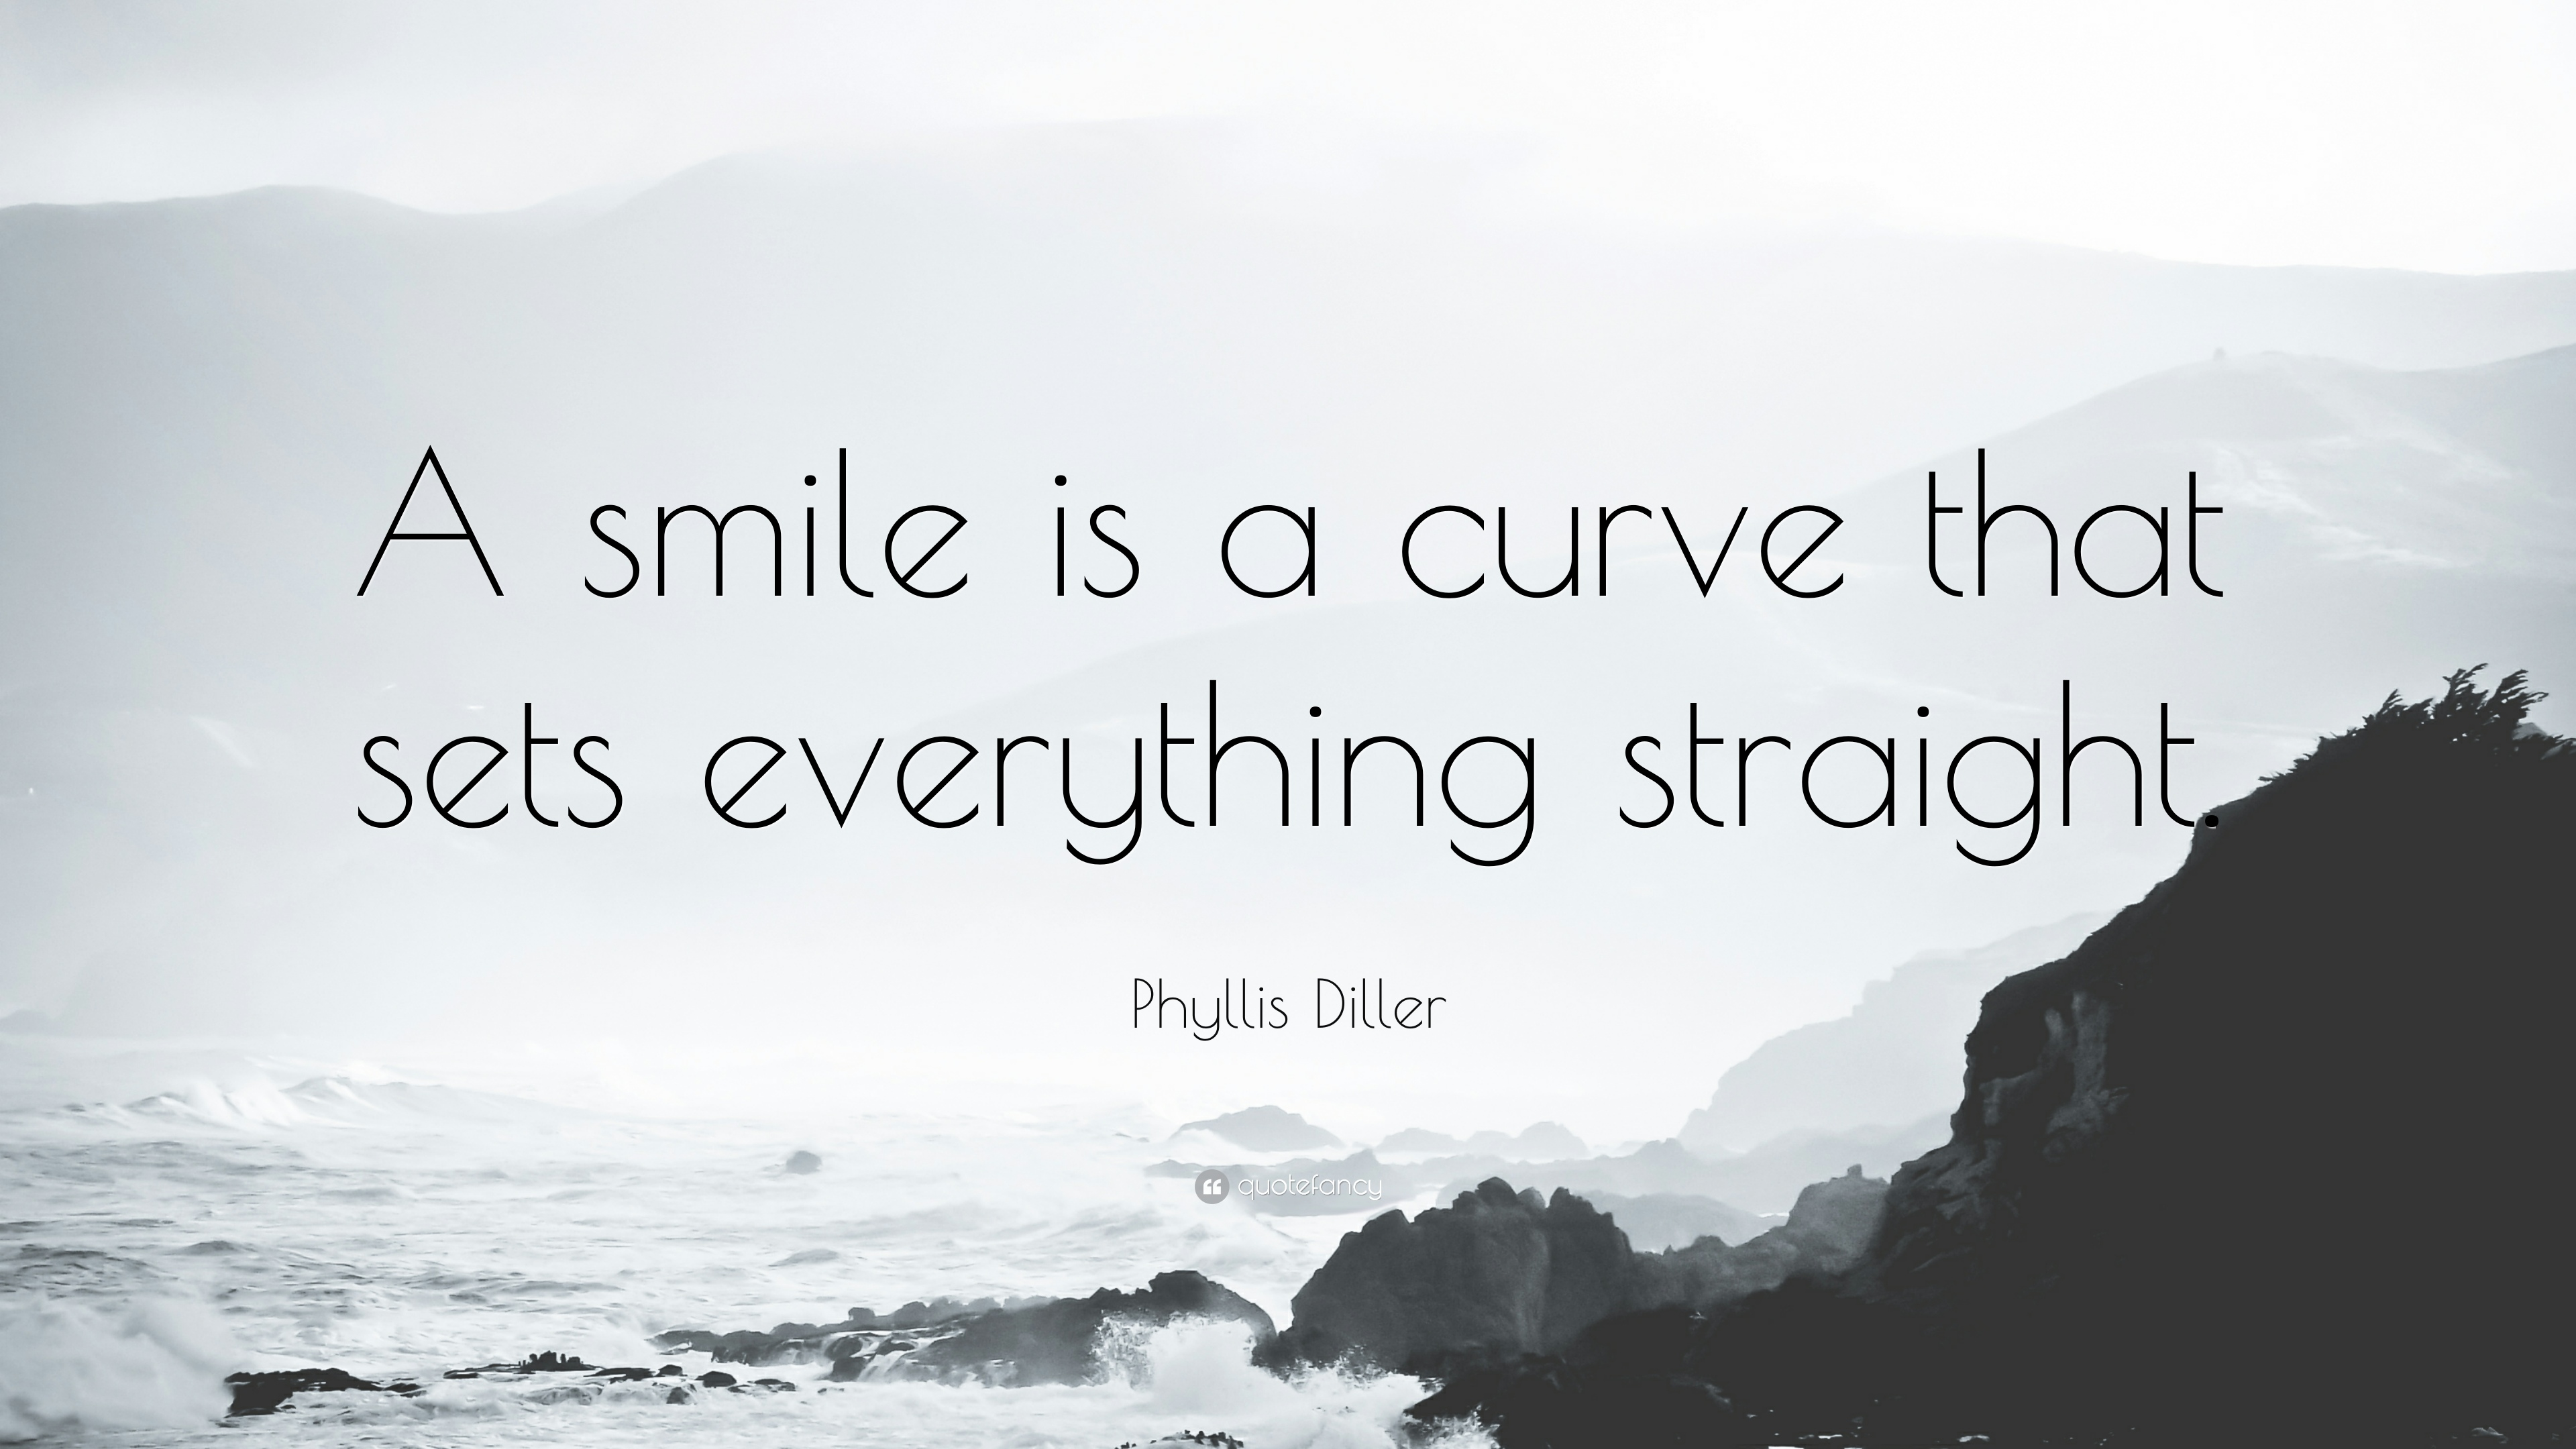 Quotes About Smiles Beauteous Smile Quotes 40 Wallpapers  Quotefancy